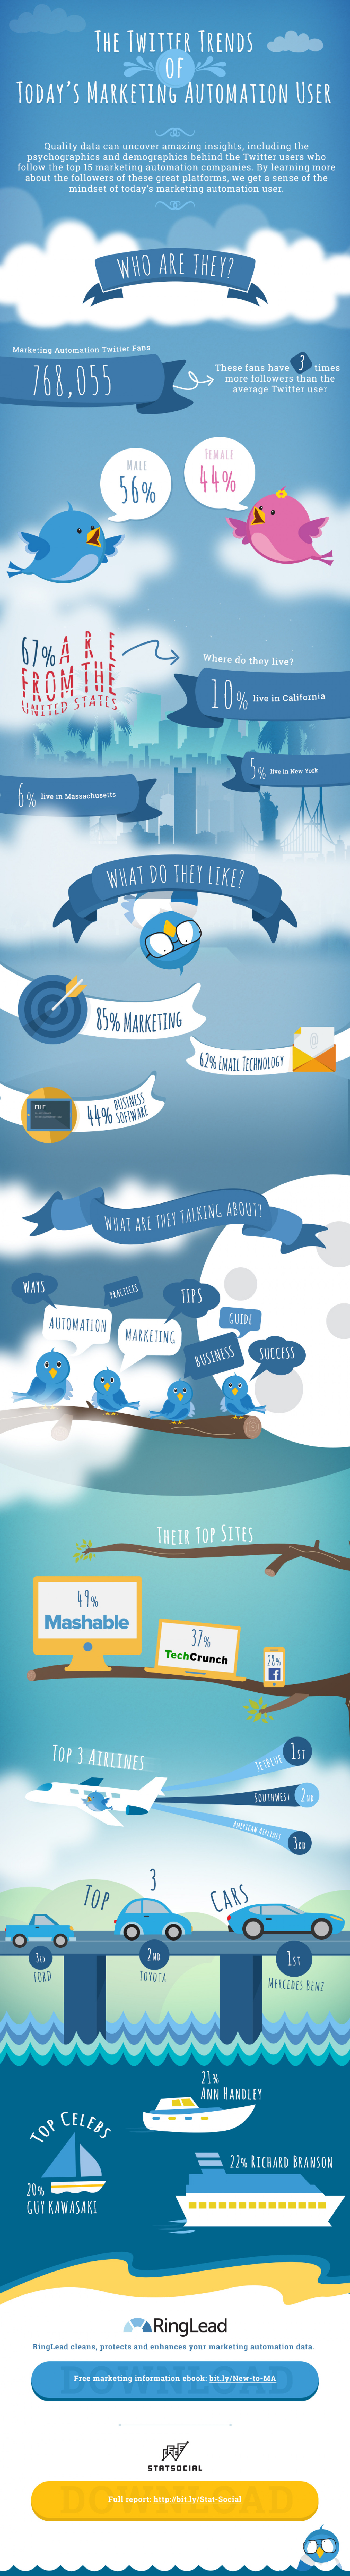 The Twitter Trends of Today's Marketing Automation User Infographic